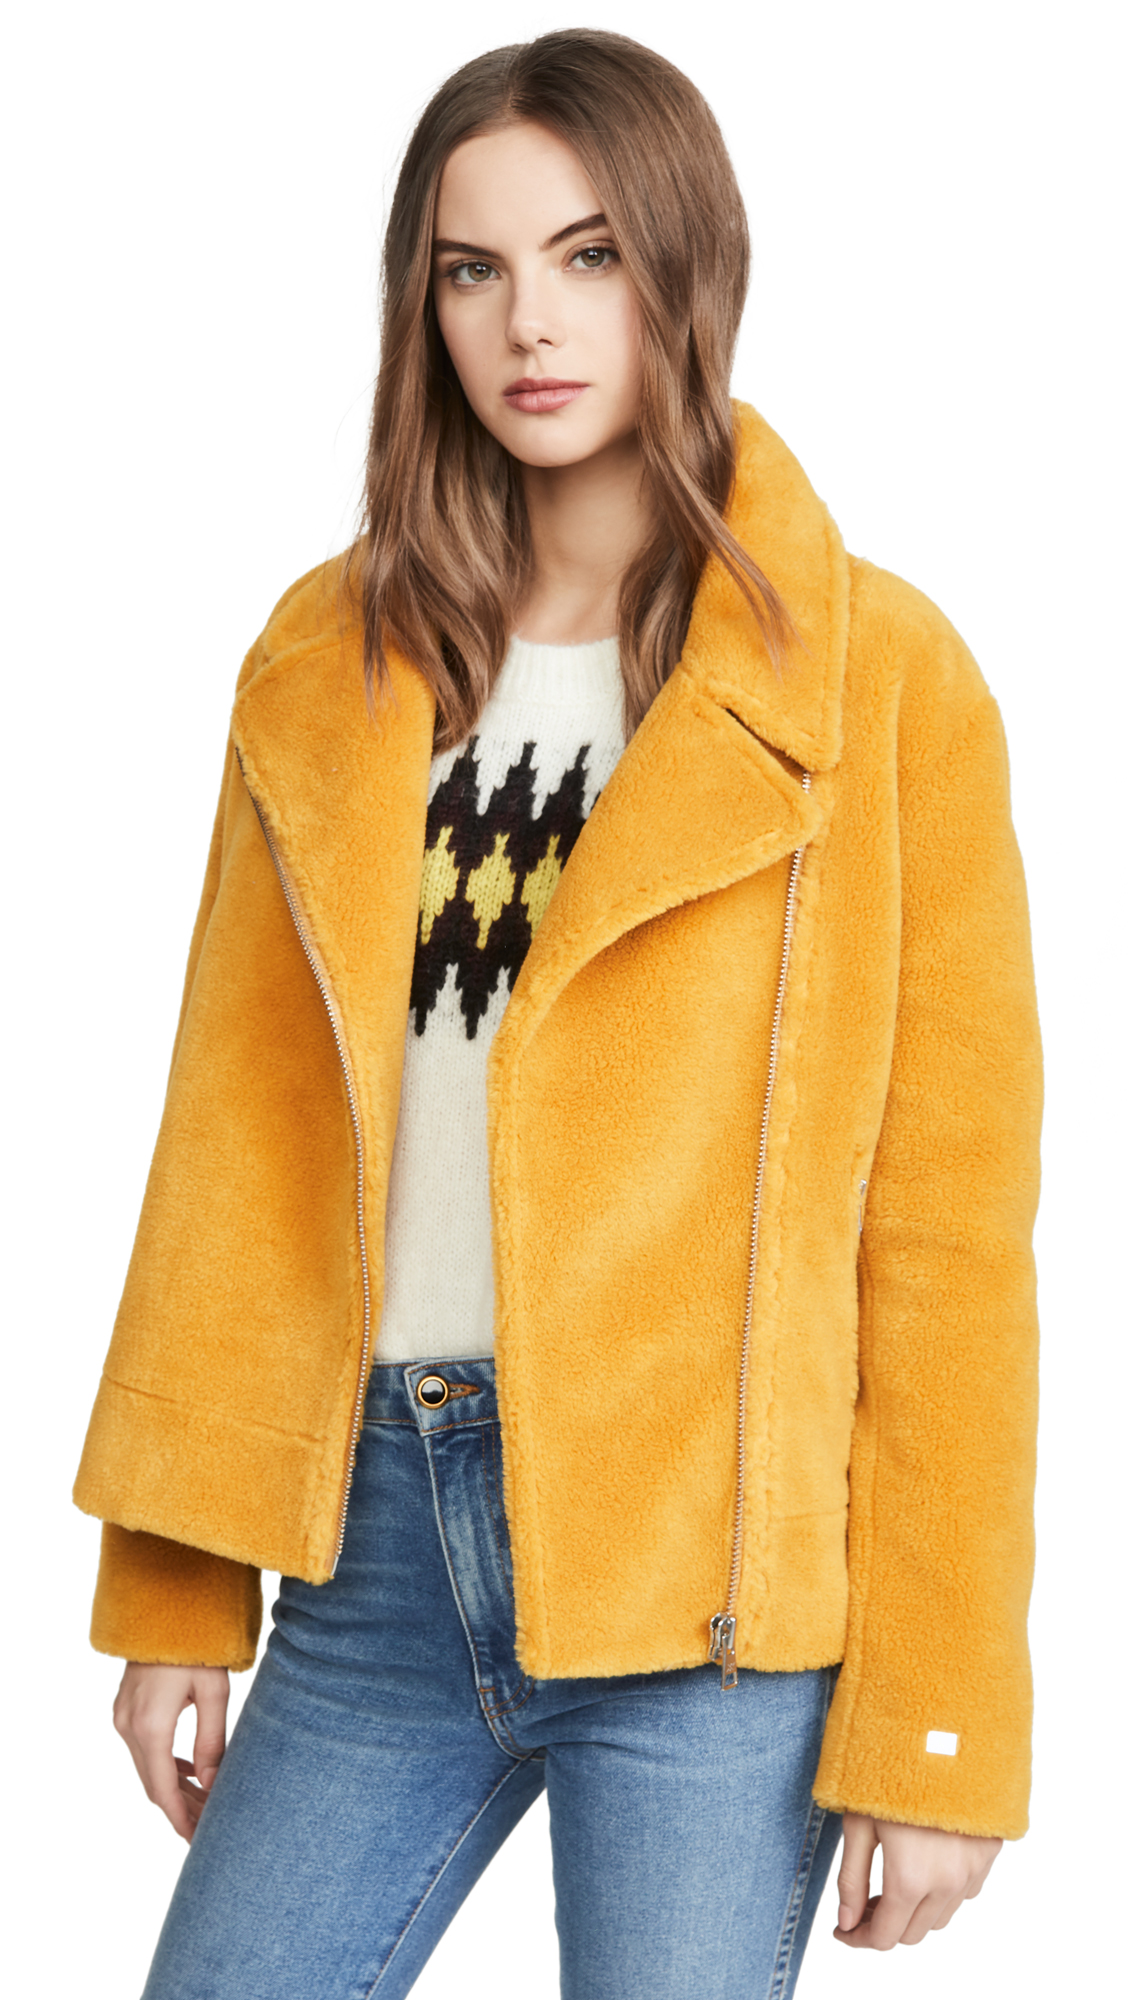 Buy SOIA & KYO Laure Jacket online beautiful SOIA & KYO Jackets, Coats, Down Jackets